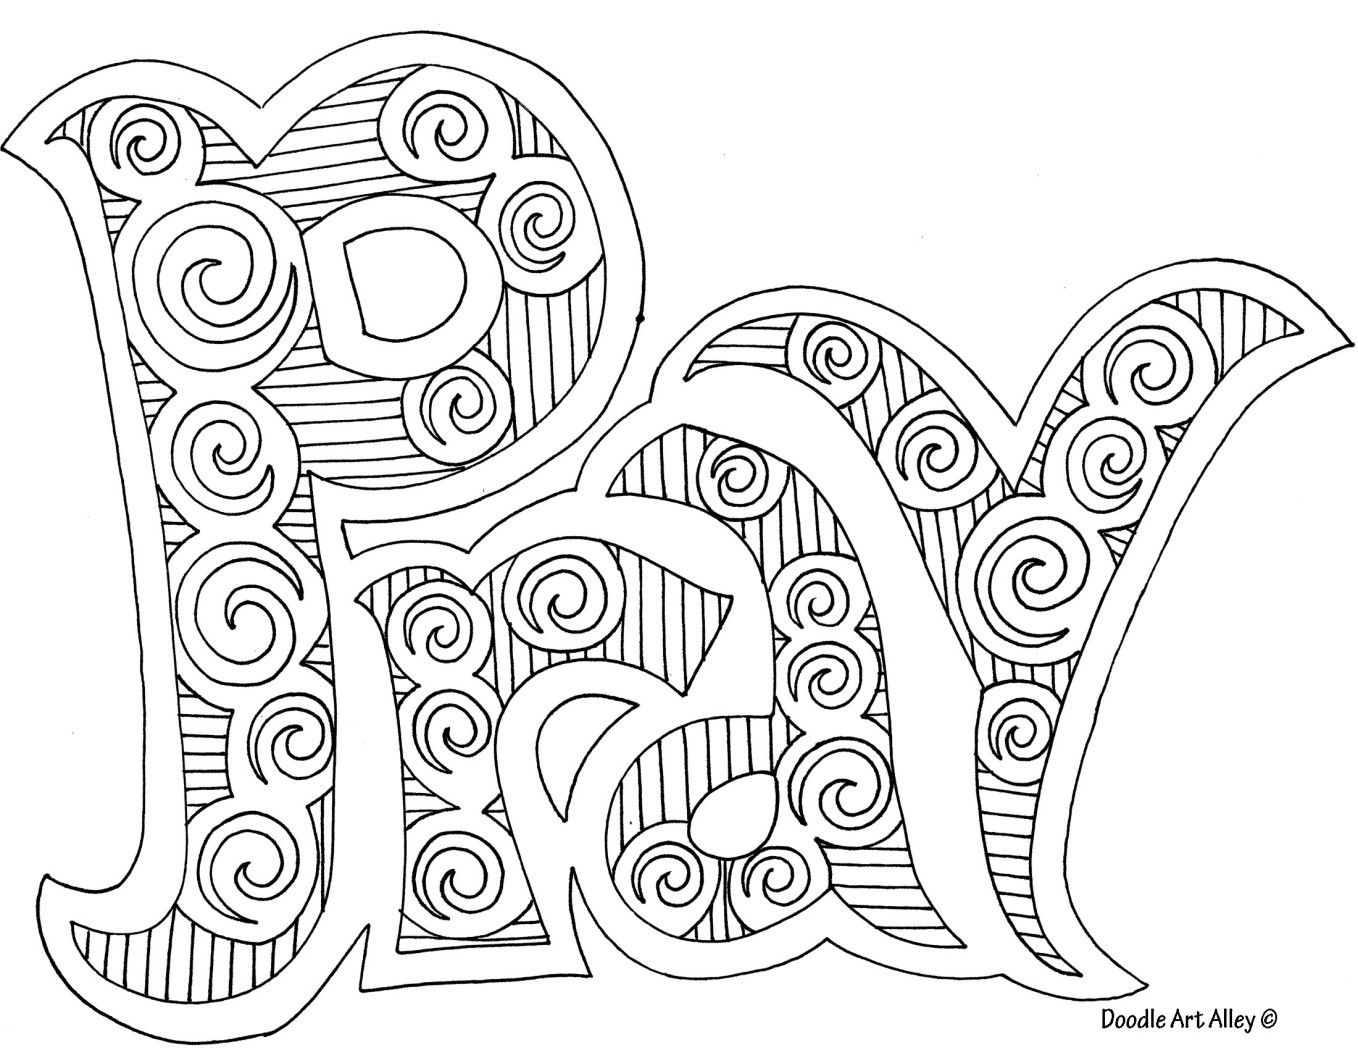 Doodle art pray - nice coloring page for older kids | Sunday school ...